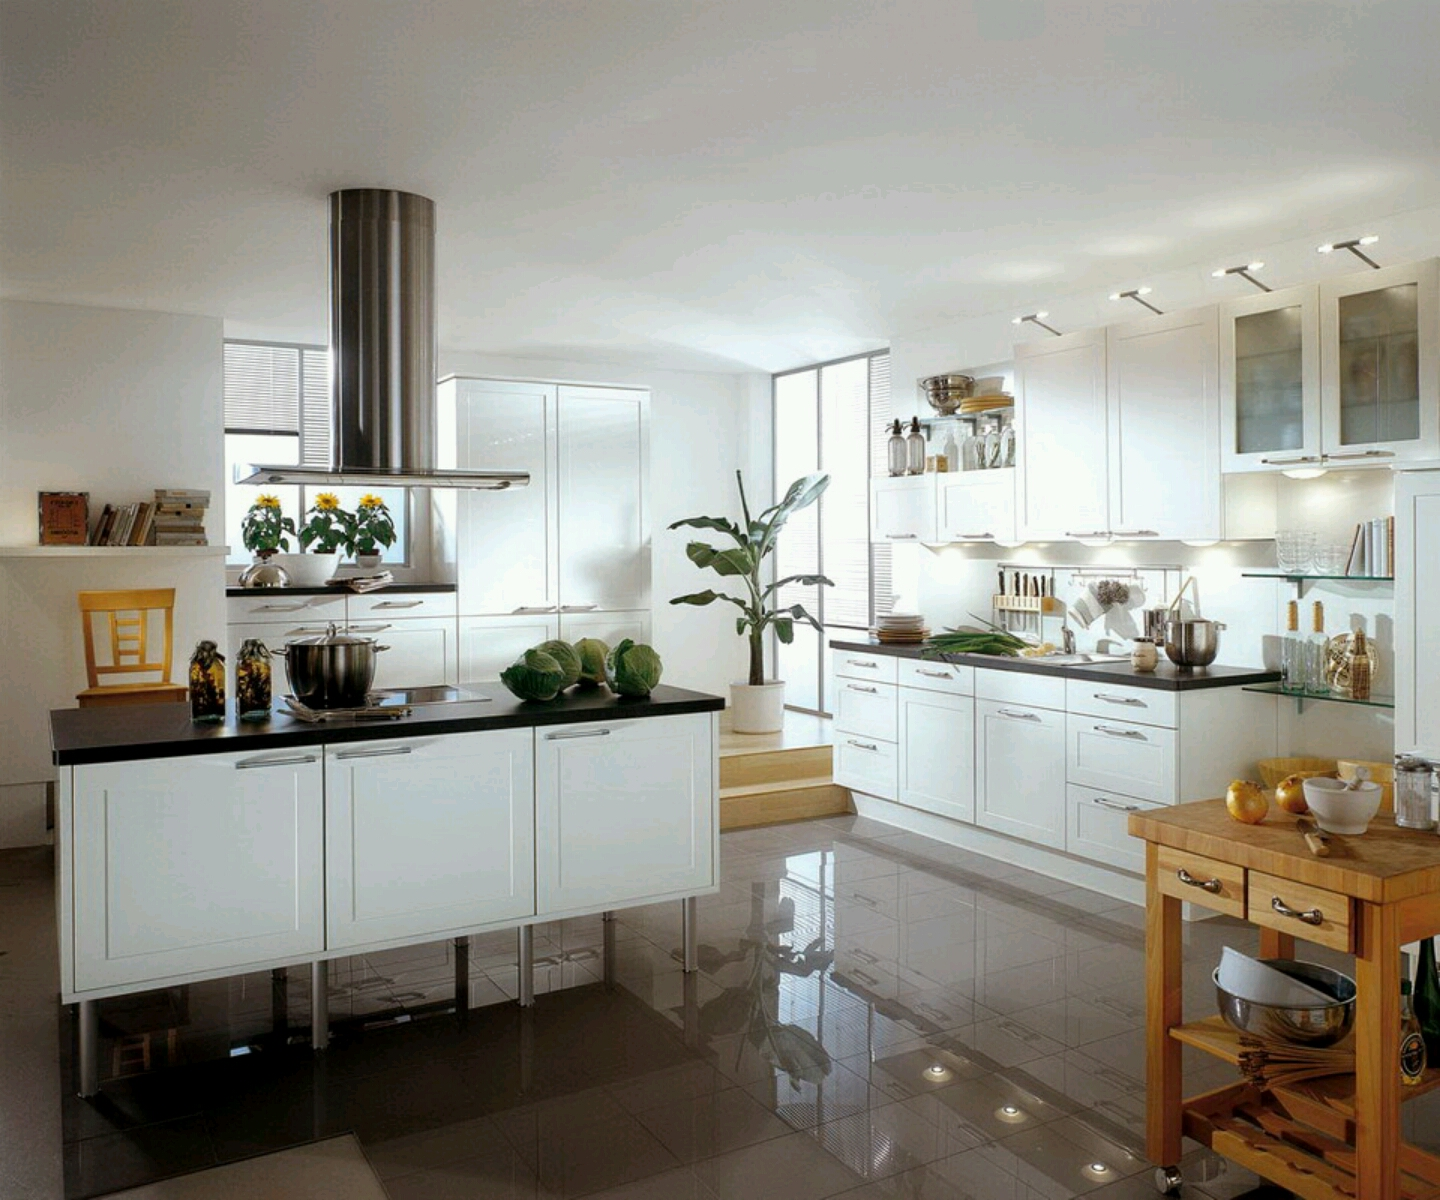 Http Shoaibnzm Home Design Blogspot Com 2012 12 Modern Kitchen Designs Ideas Html